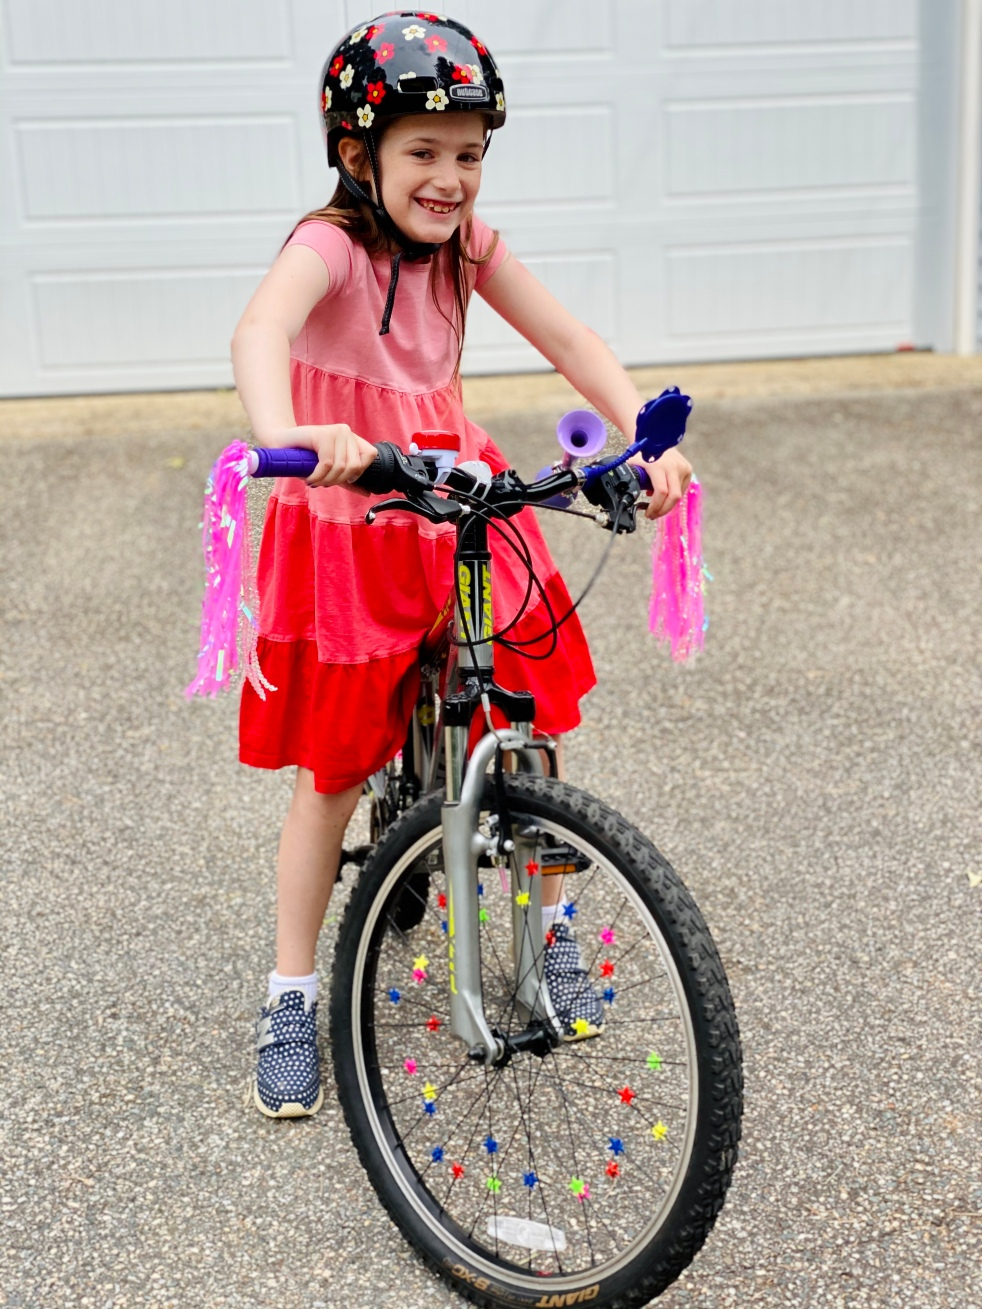 Maggie in a pink and orange dress, on a bike with pink streamers.